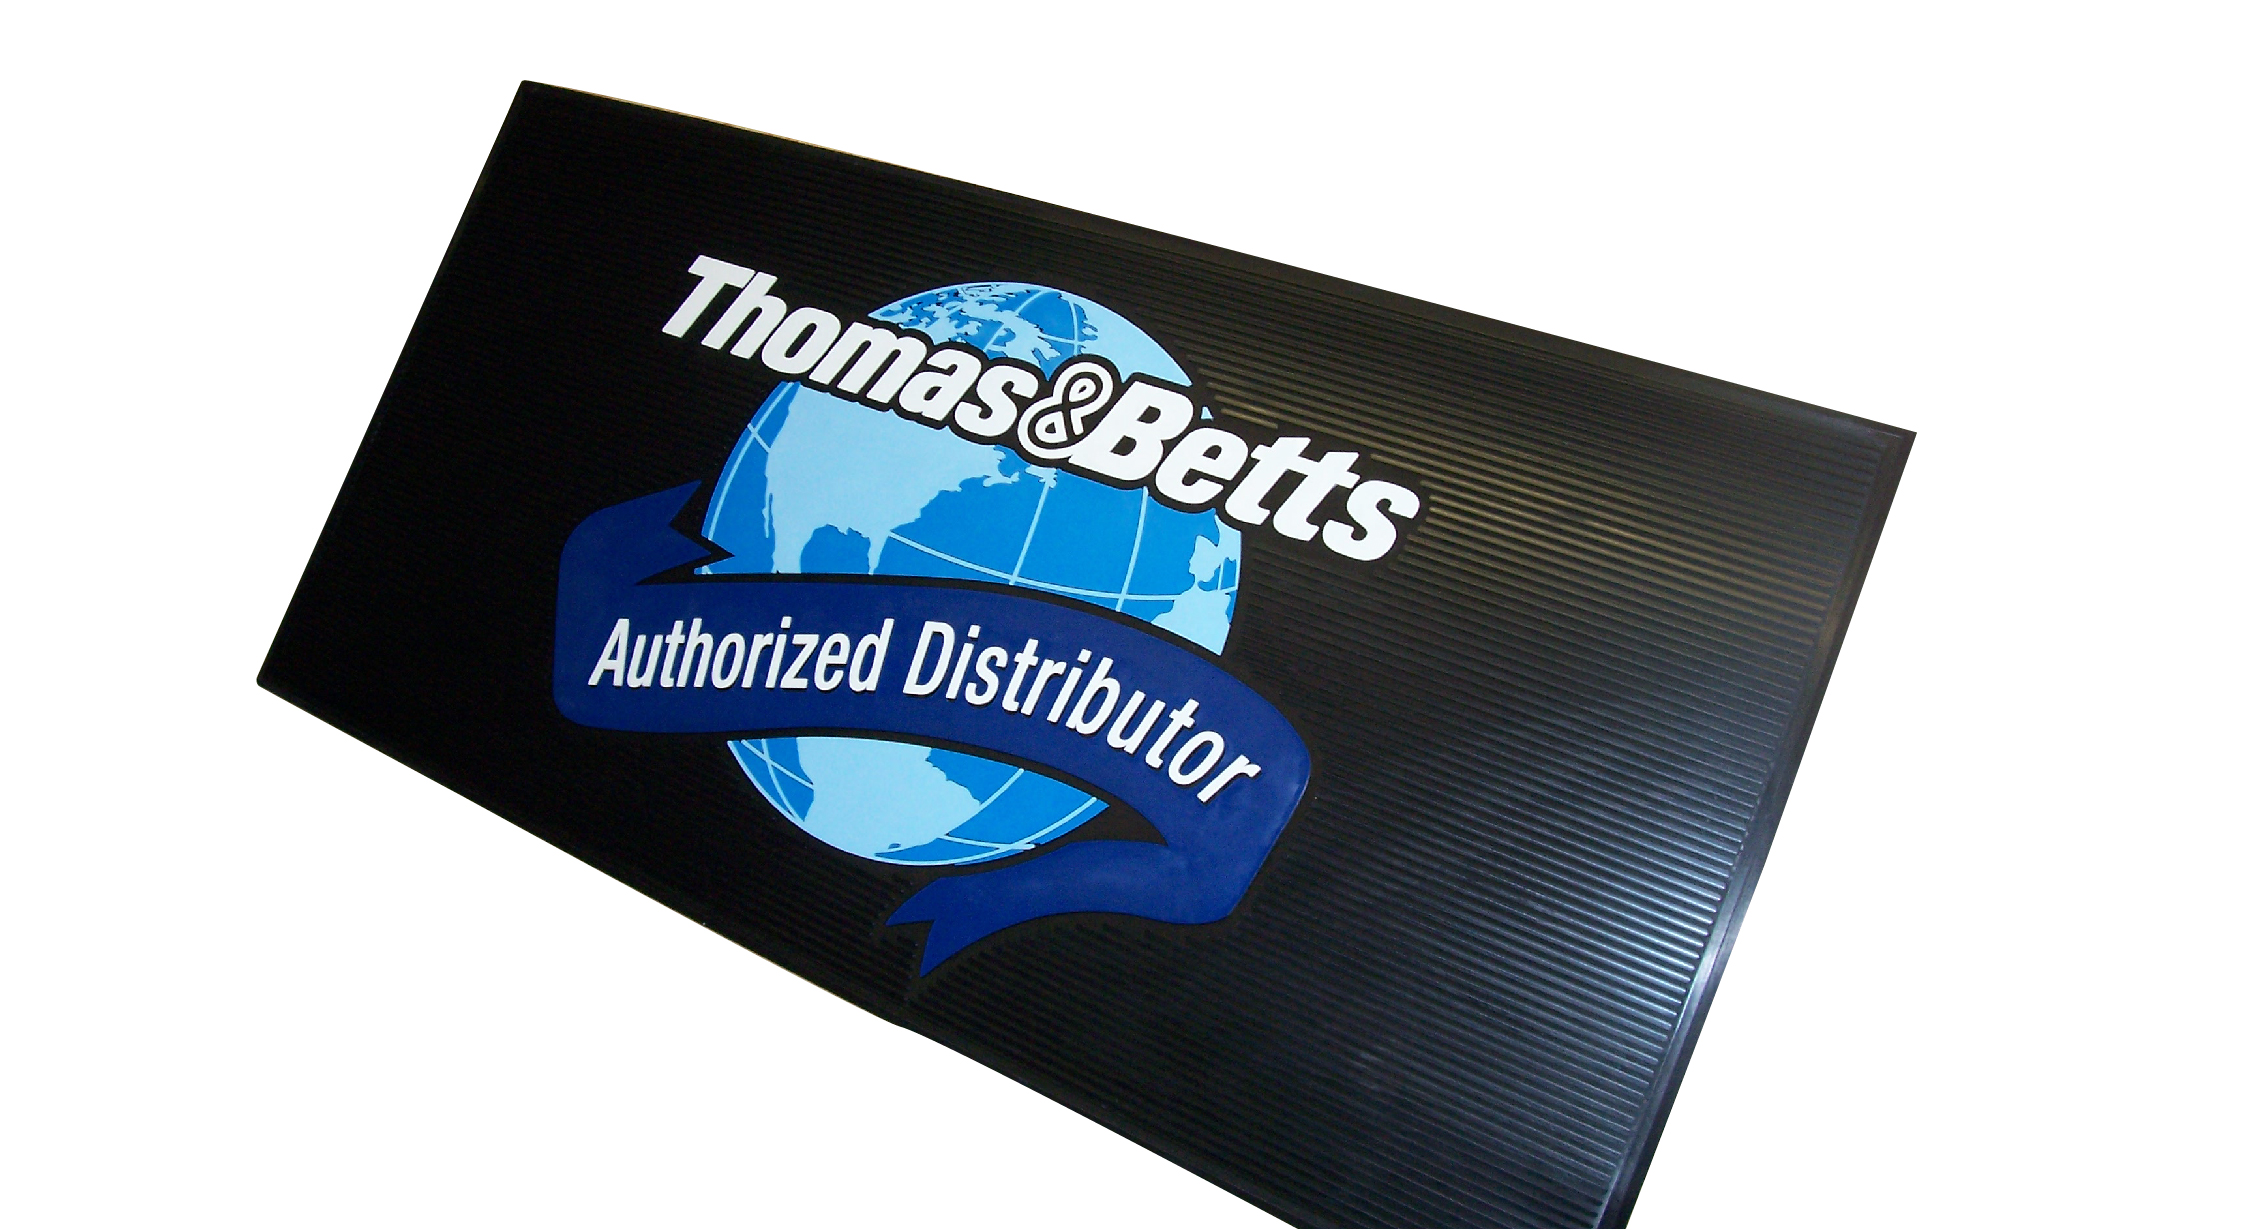 Thomas & Betts Molded Floor Mat